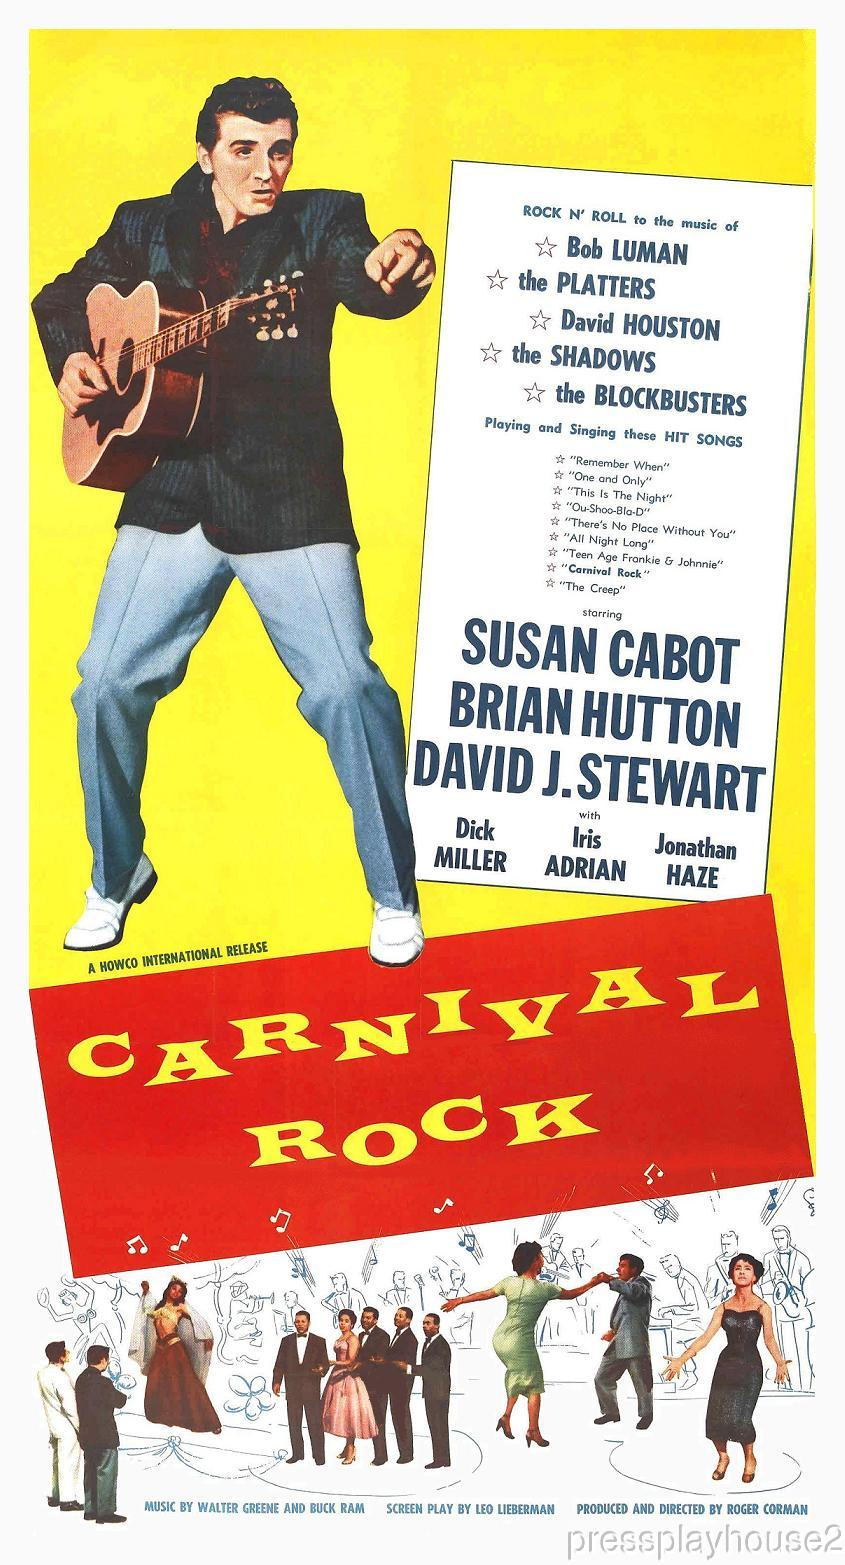 Carnival Rock: DVD, 1957, Susan Cabot, Bob Luman, The Platters, Rock & Roll Crime! product photo